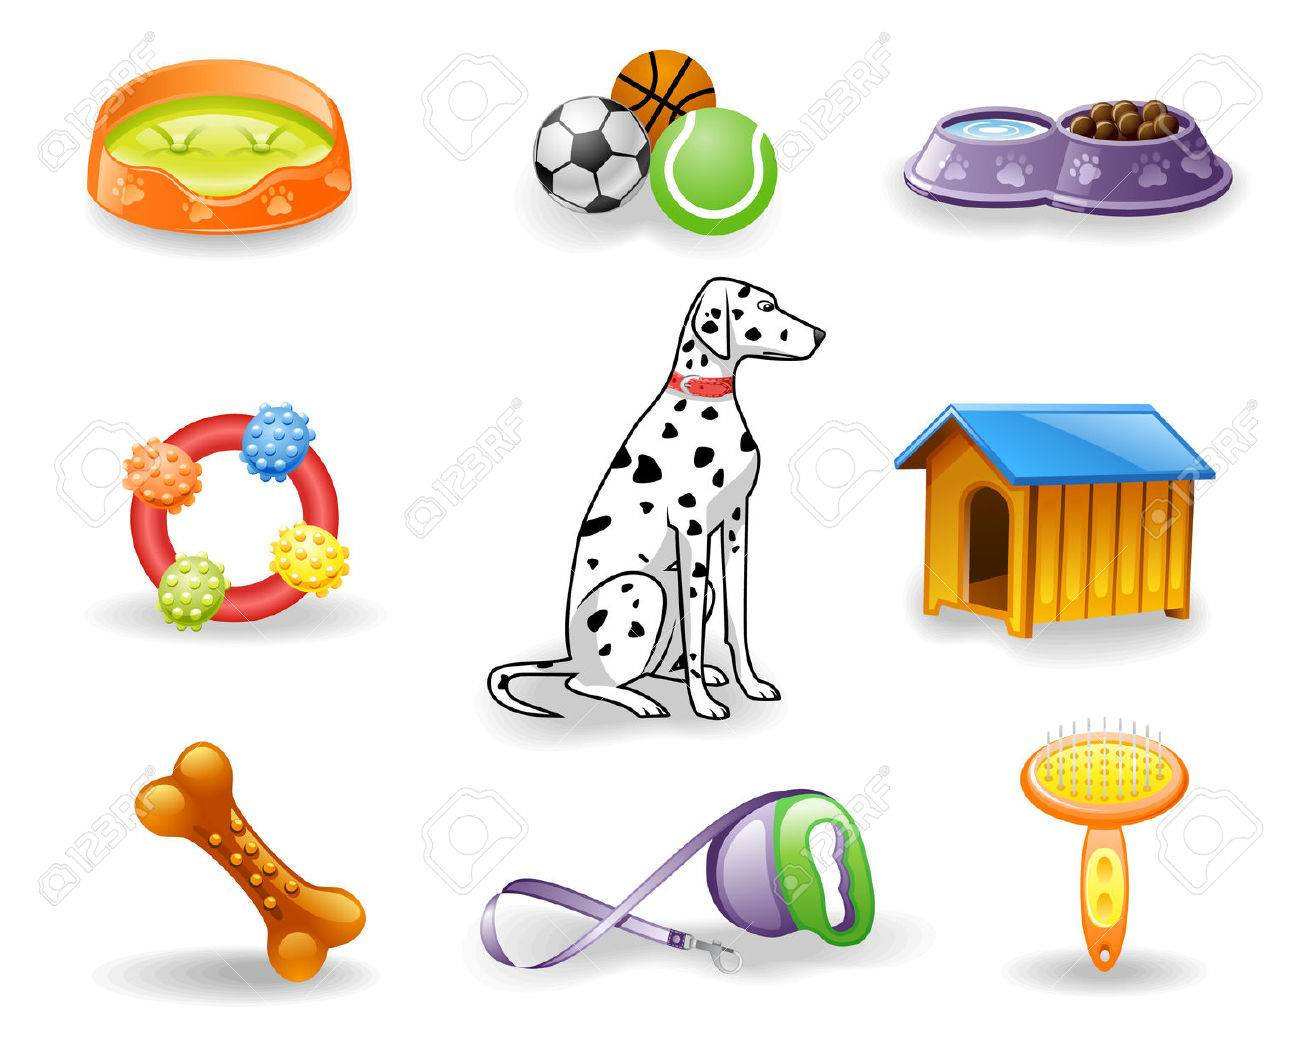 Dog care icon set.  Isolated on a white background. Stock Vector - 7826738